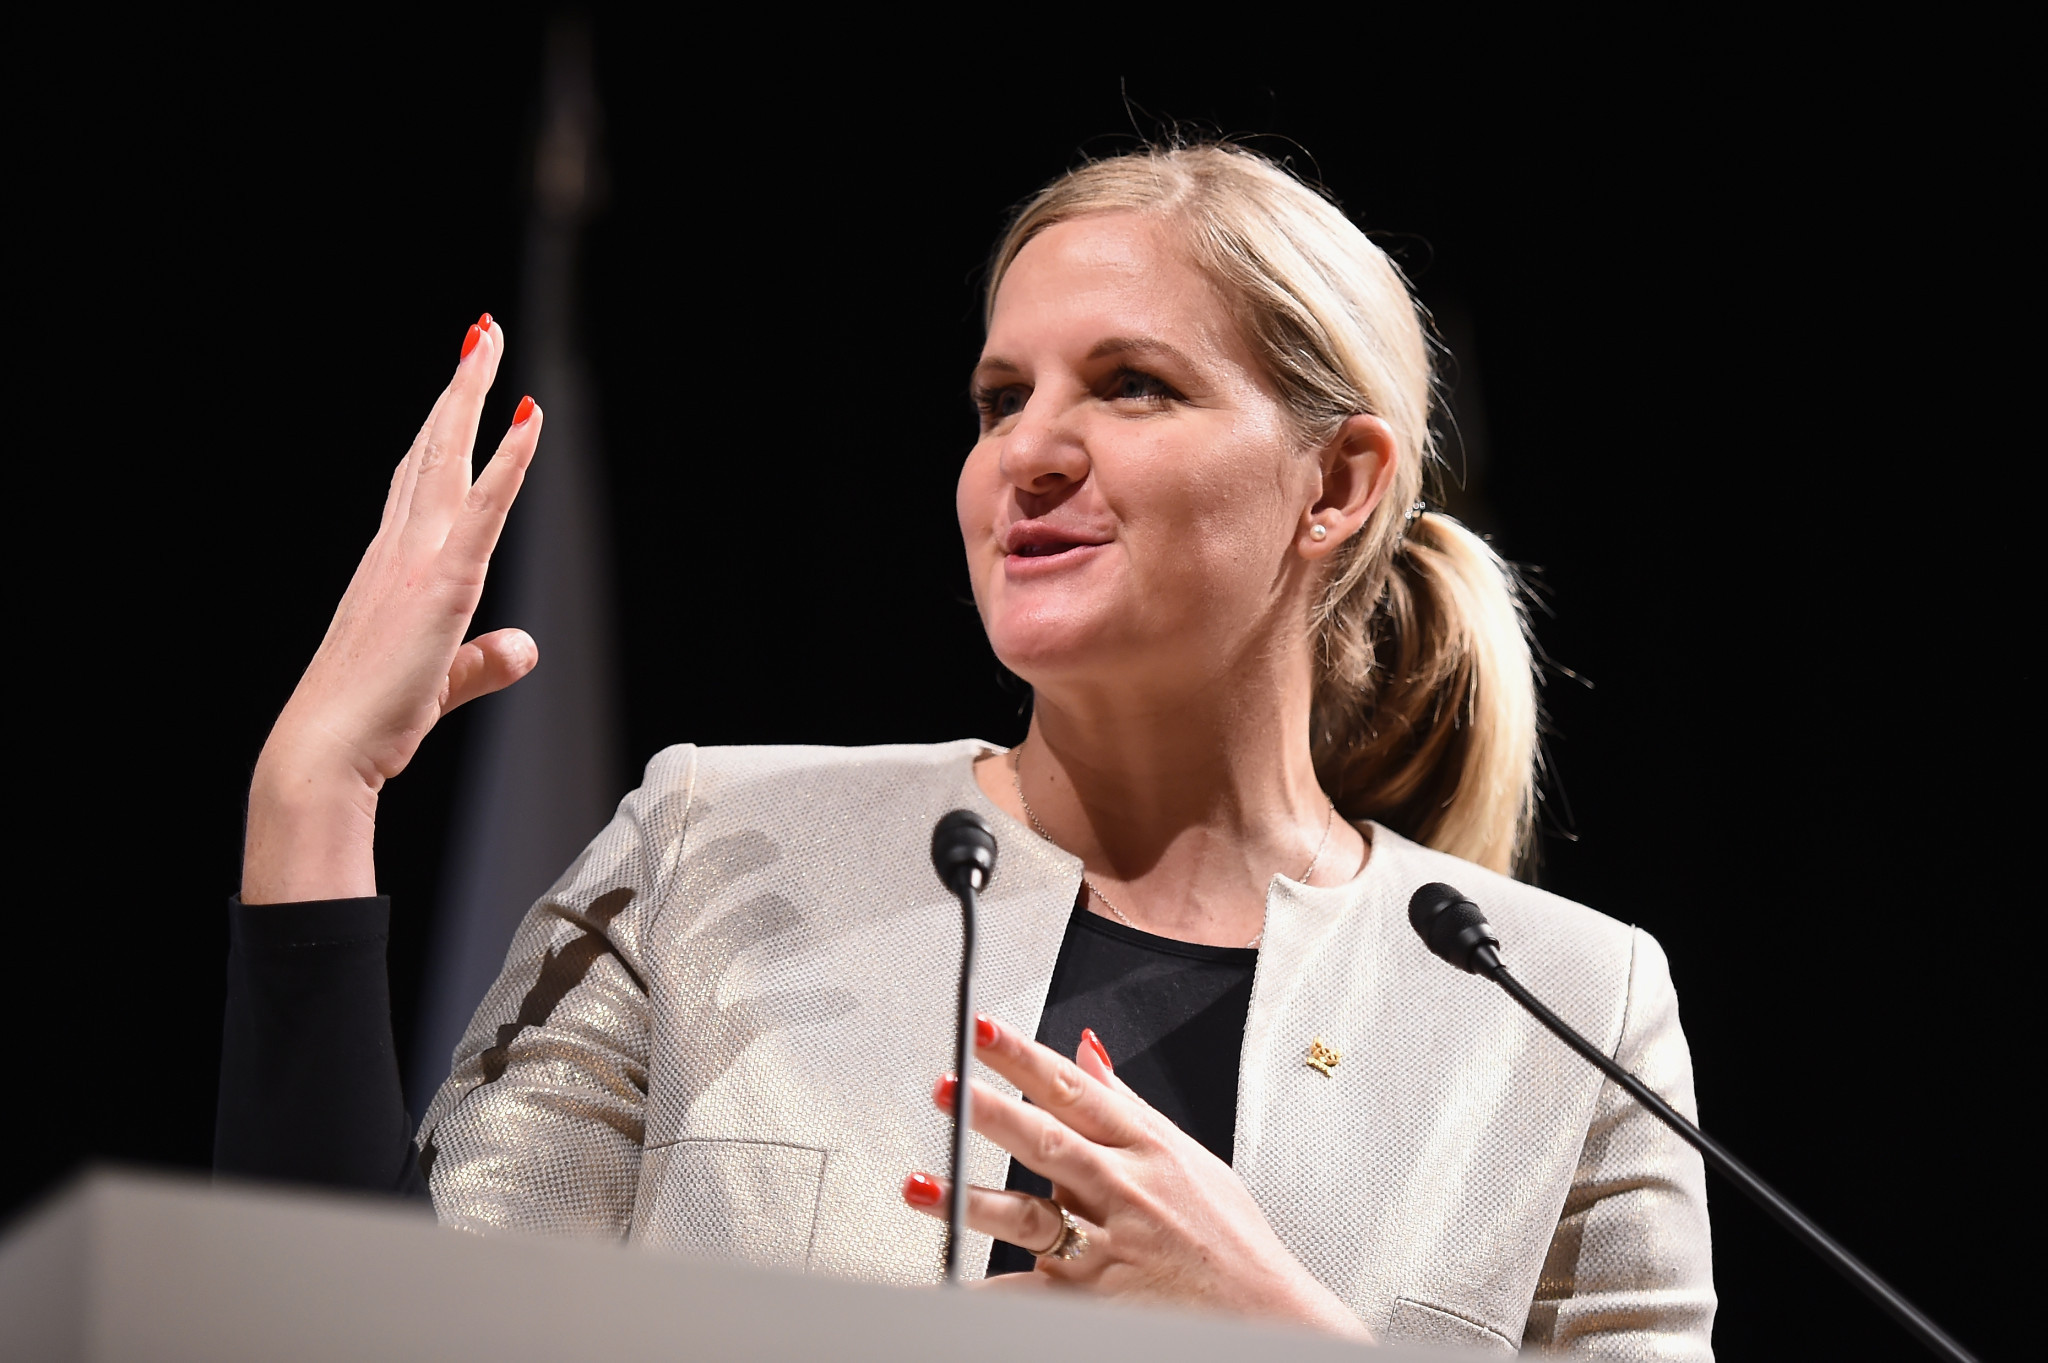 Former PE teacher Kathleen Lobb replaces International Olympic Committee member and double Olympic gold medallist Kirsty Coventry, pictured, as vice-president of the Zimbabwe Olympic Committee ©Getty Images